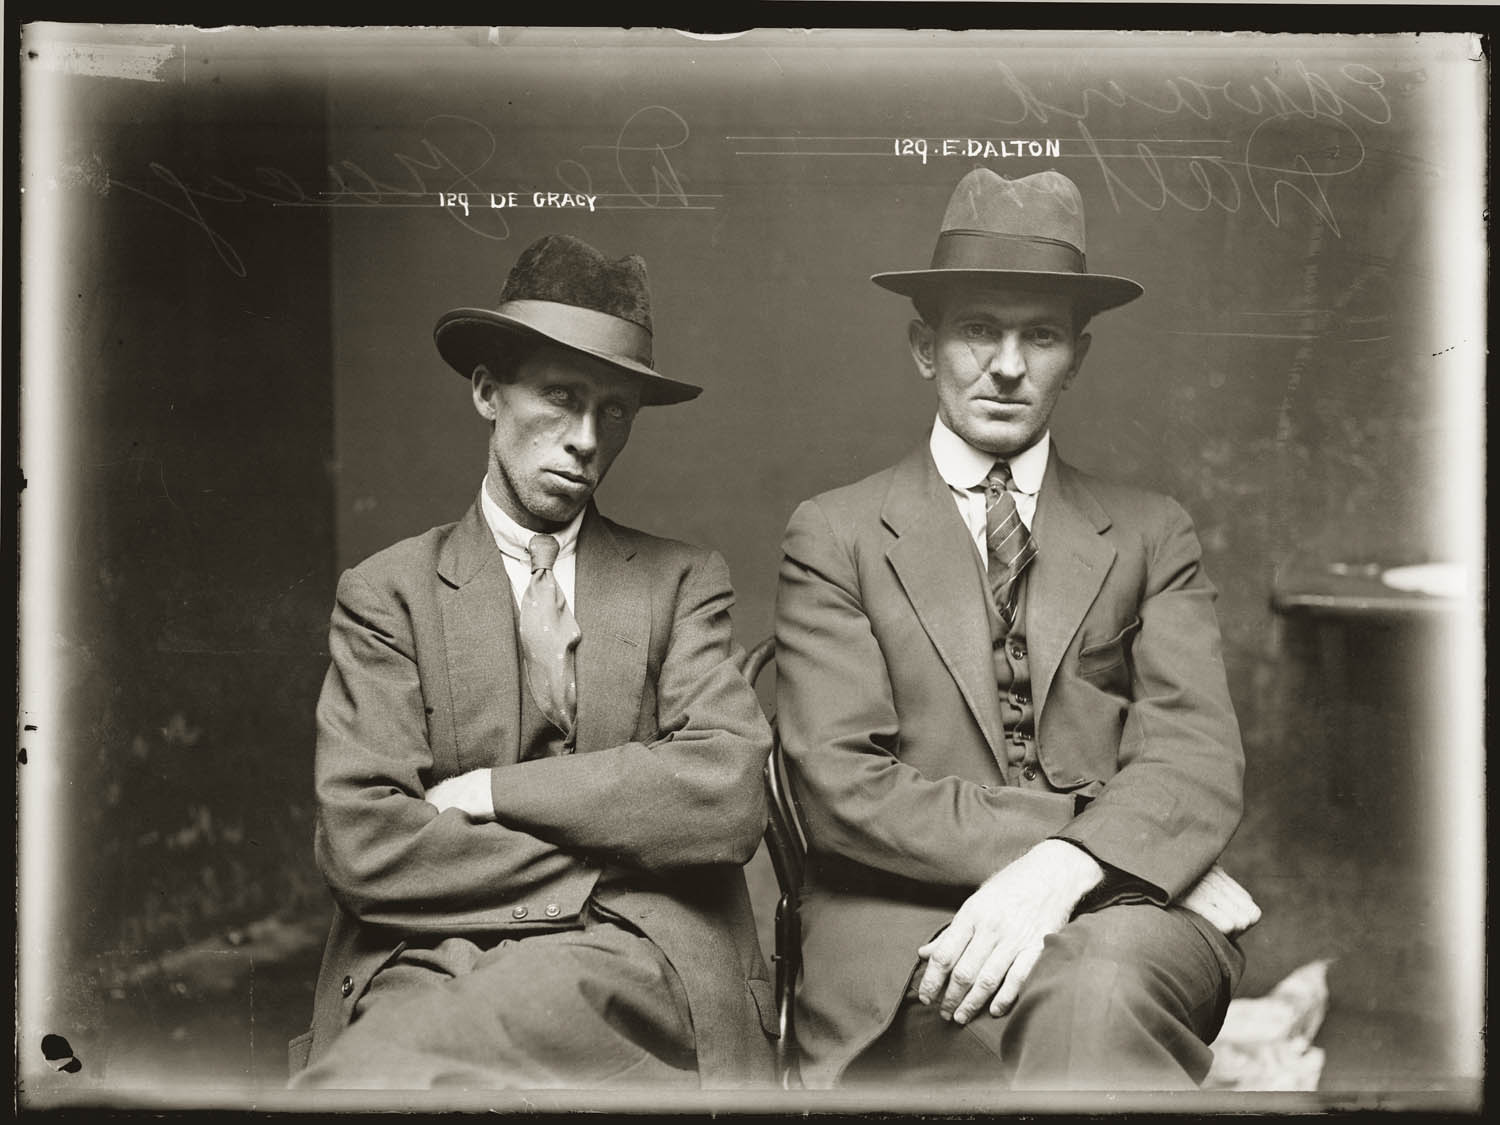 Mug shot of De Gracy (sic) and Edward Dalton. Details unknown. Central Police Station, Sydney, ca.1920.